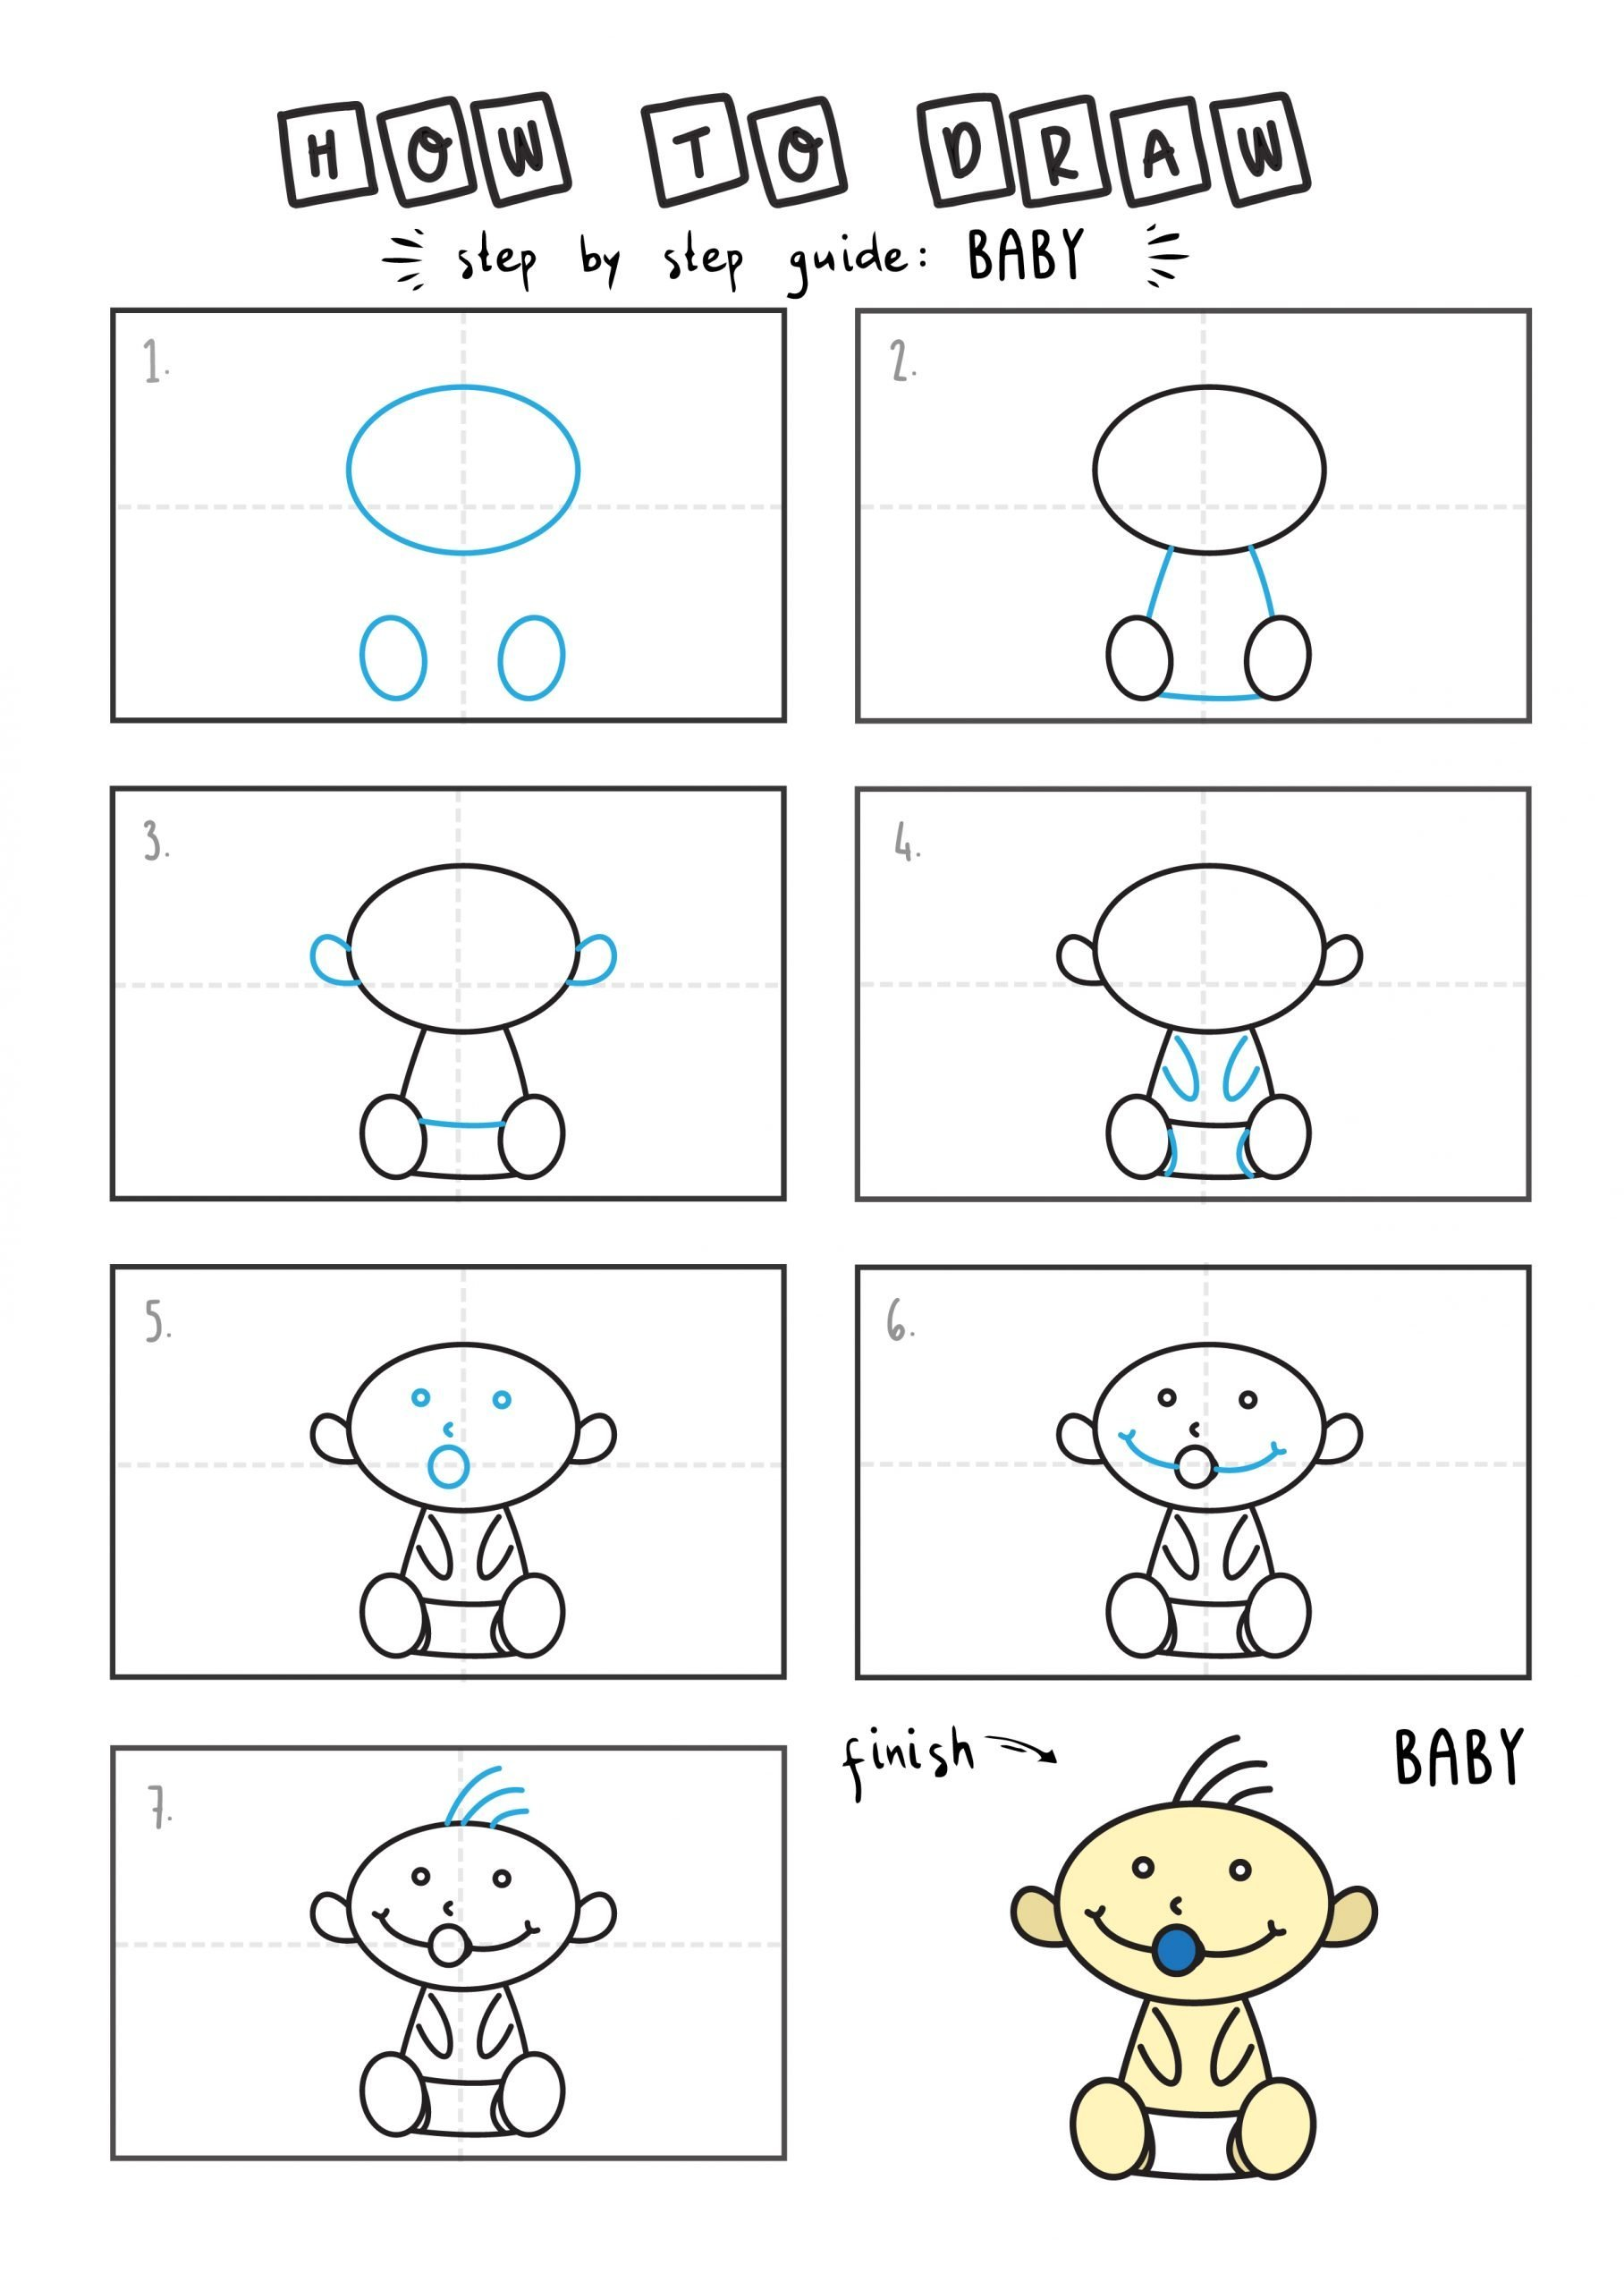 How to draw a cute cartoon baby with pacificer step by step for children EAsy simple tutorial